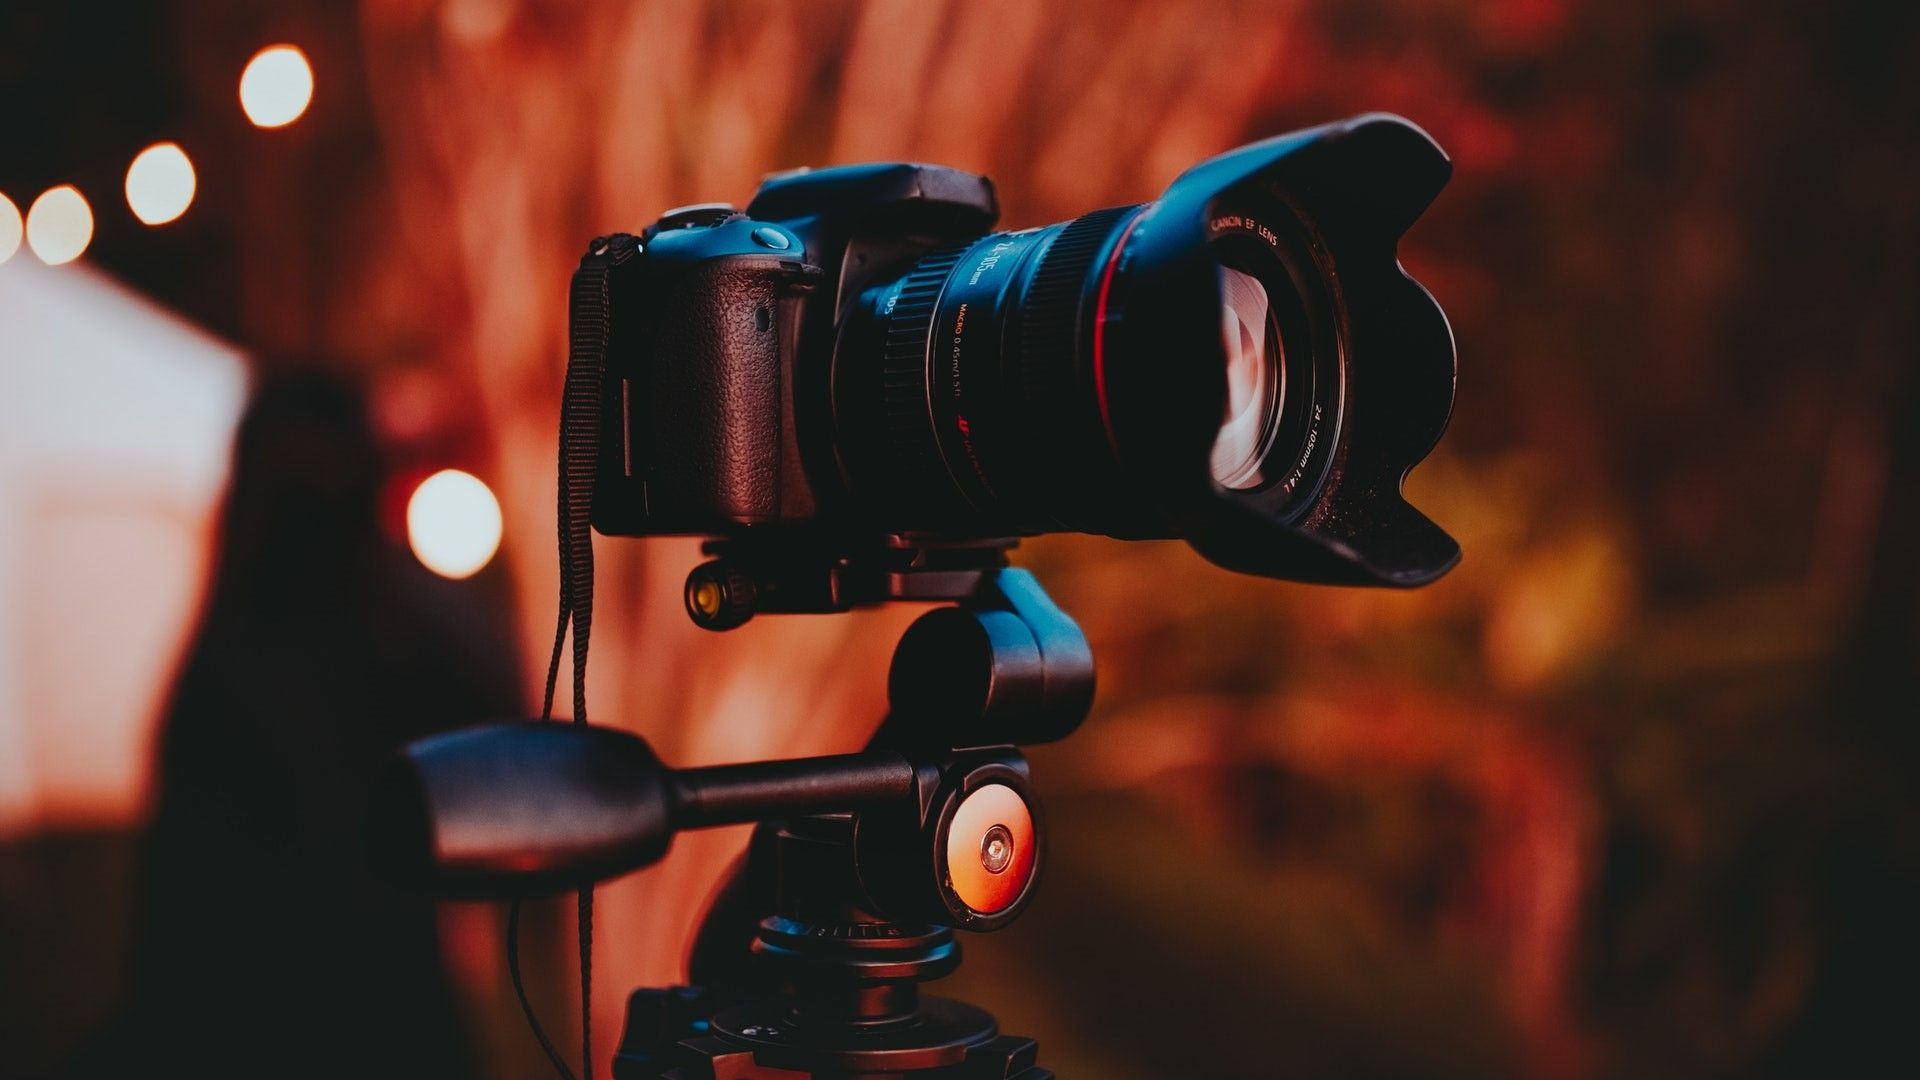 5 Things Every Video Needs To Get Results